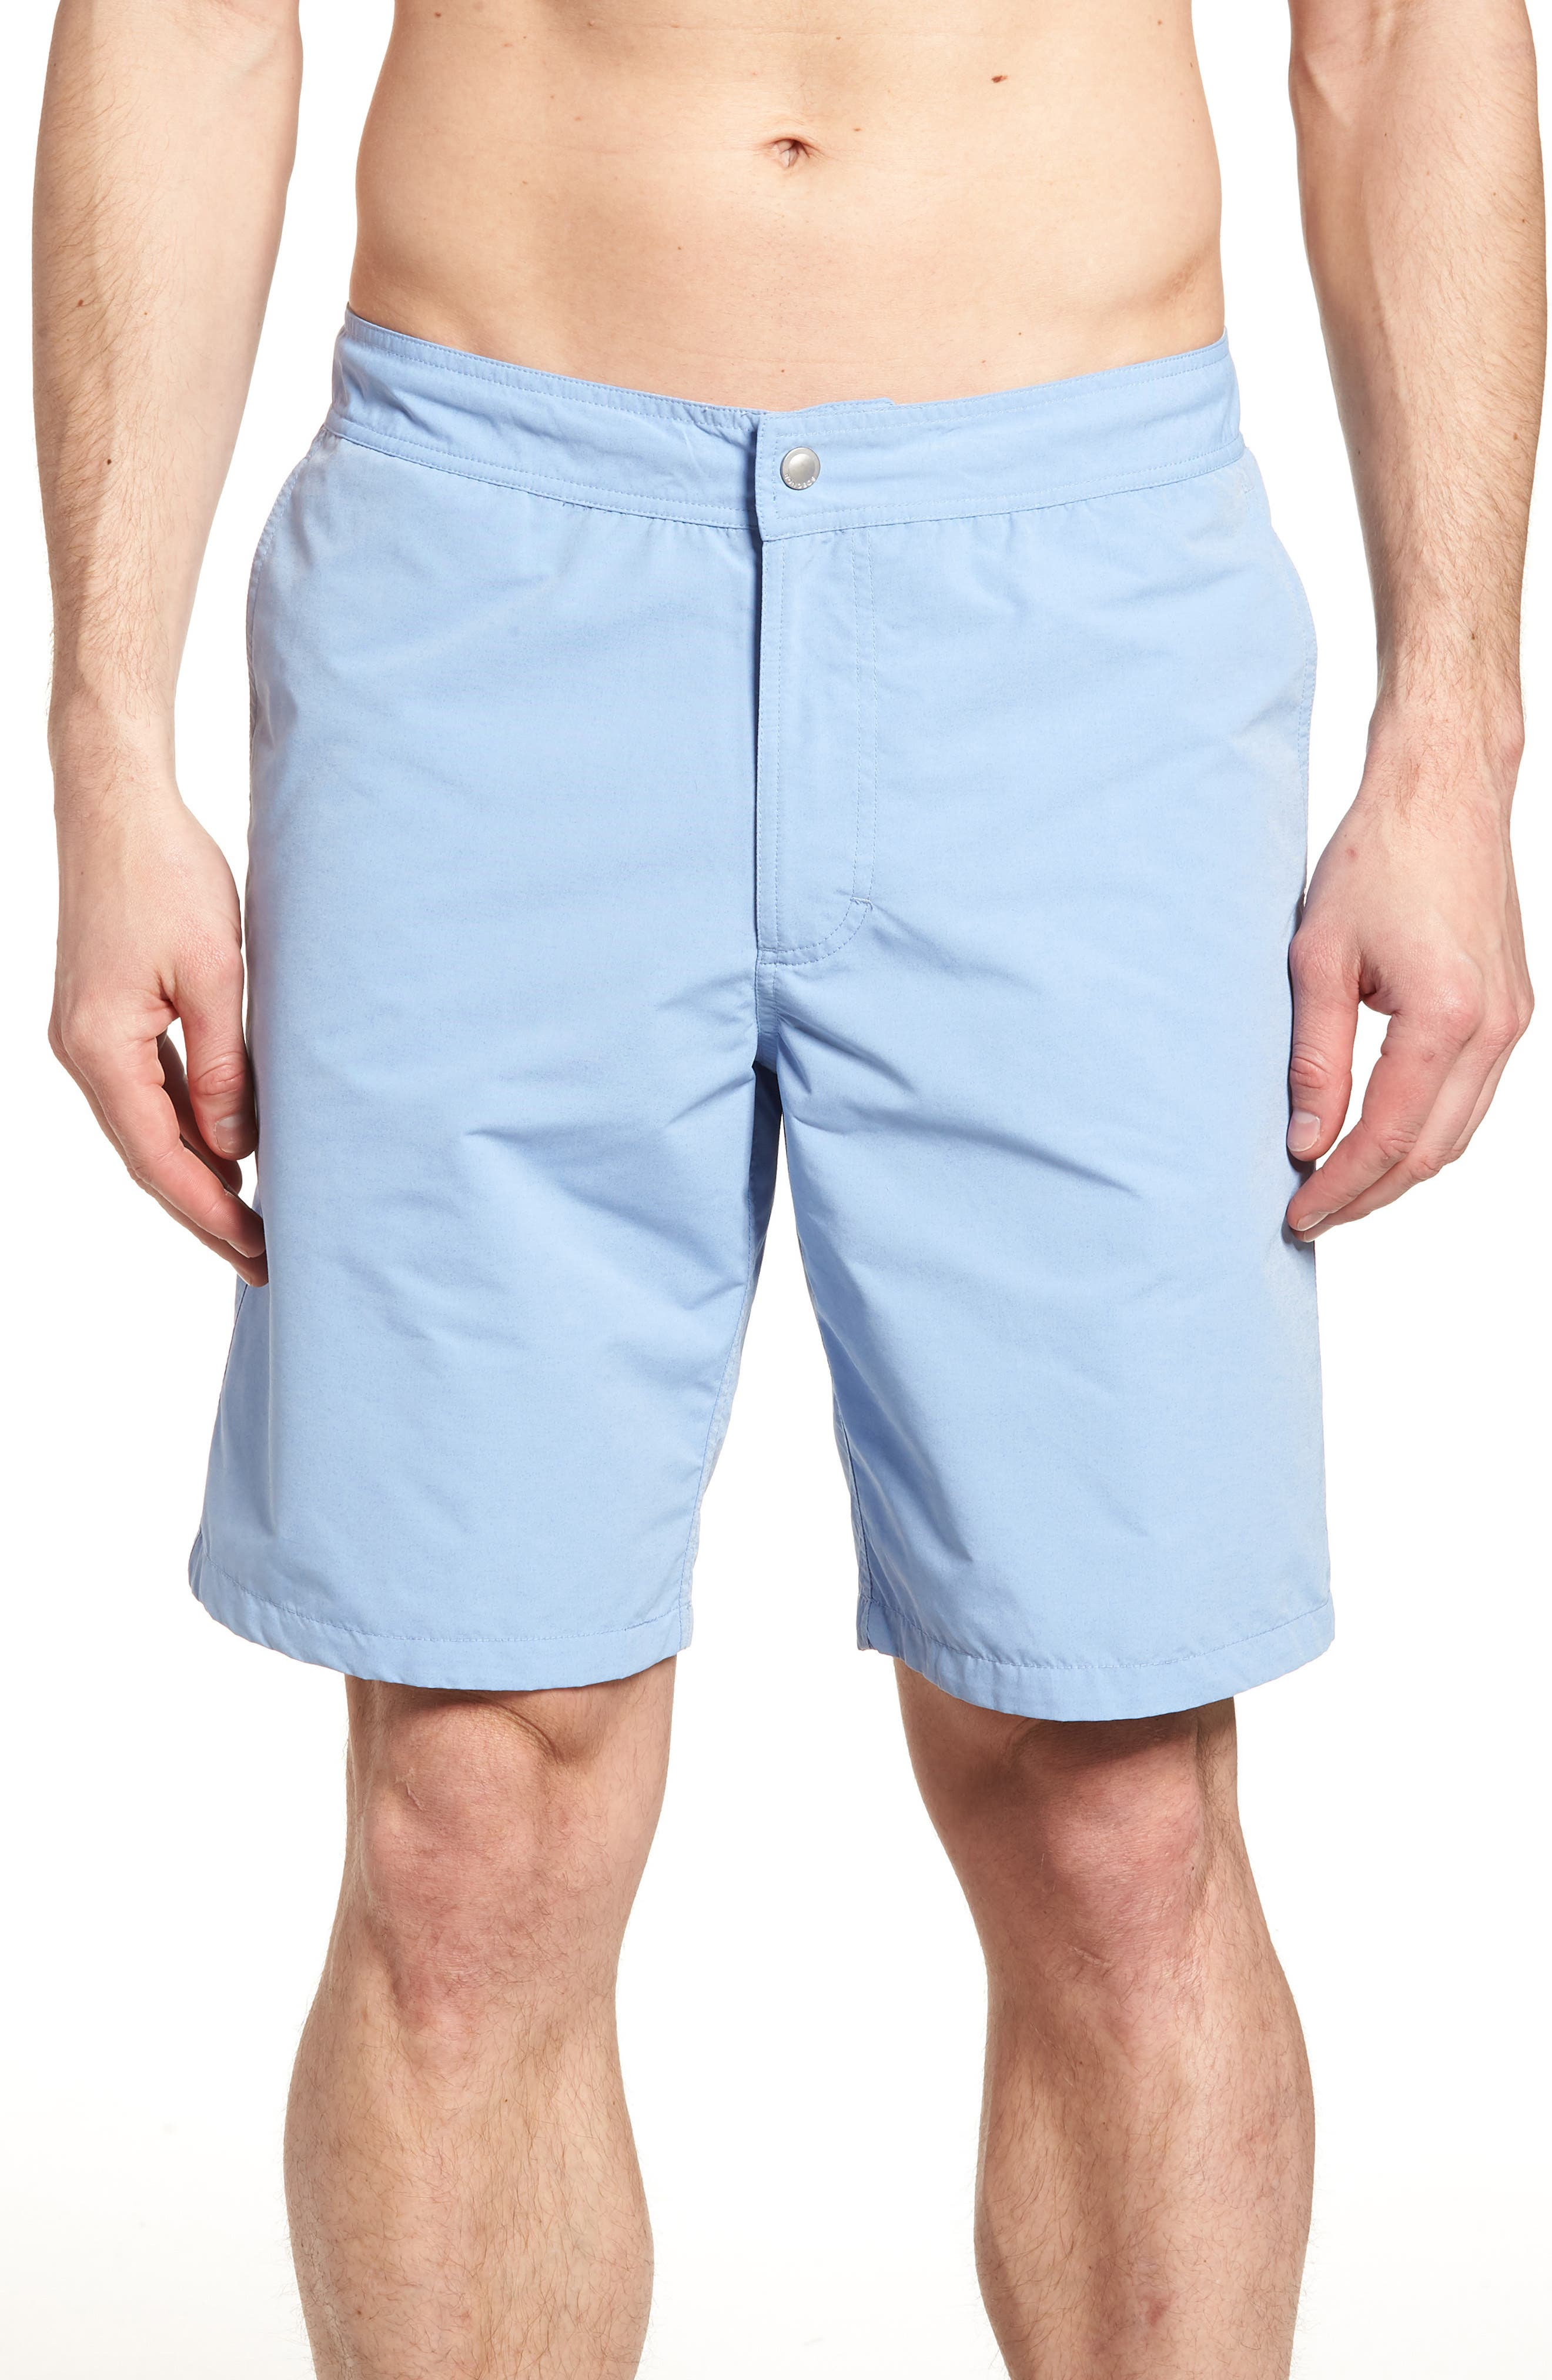 Banzai 9-Inch Swim Trunks,                             Main thumbnail 1, color,